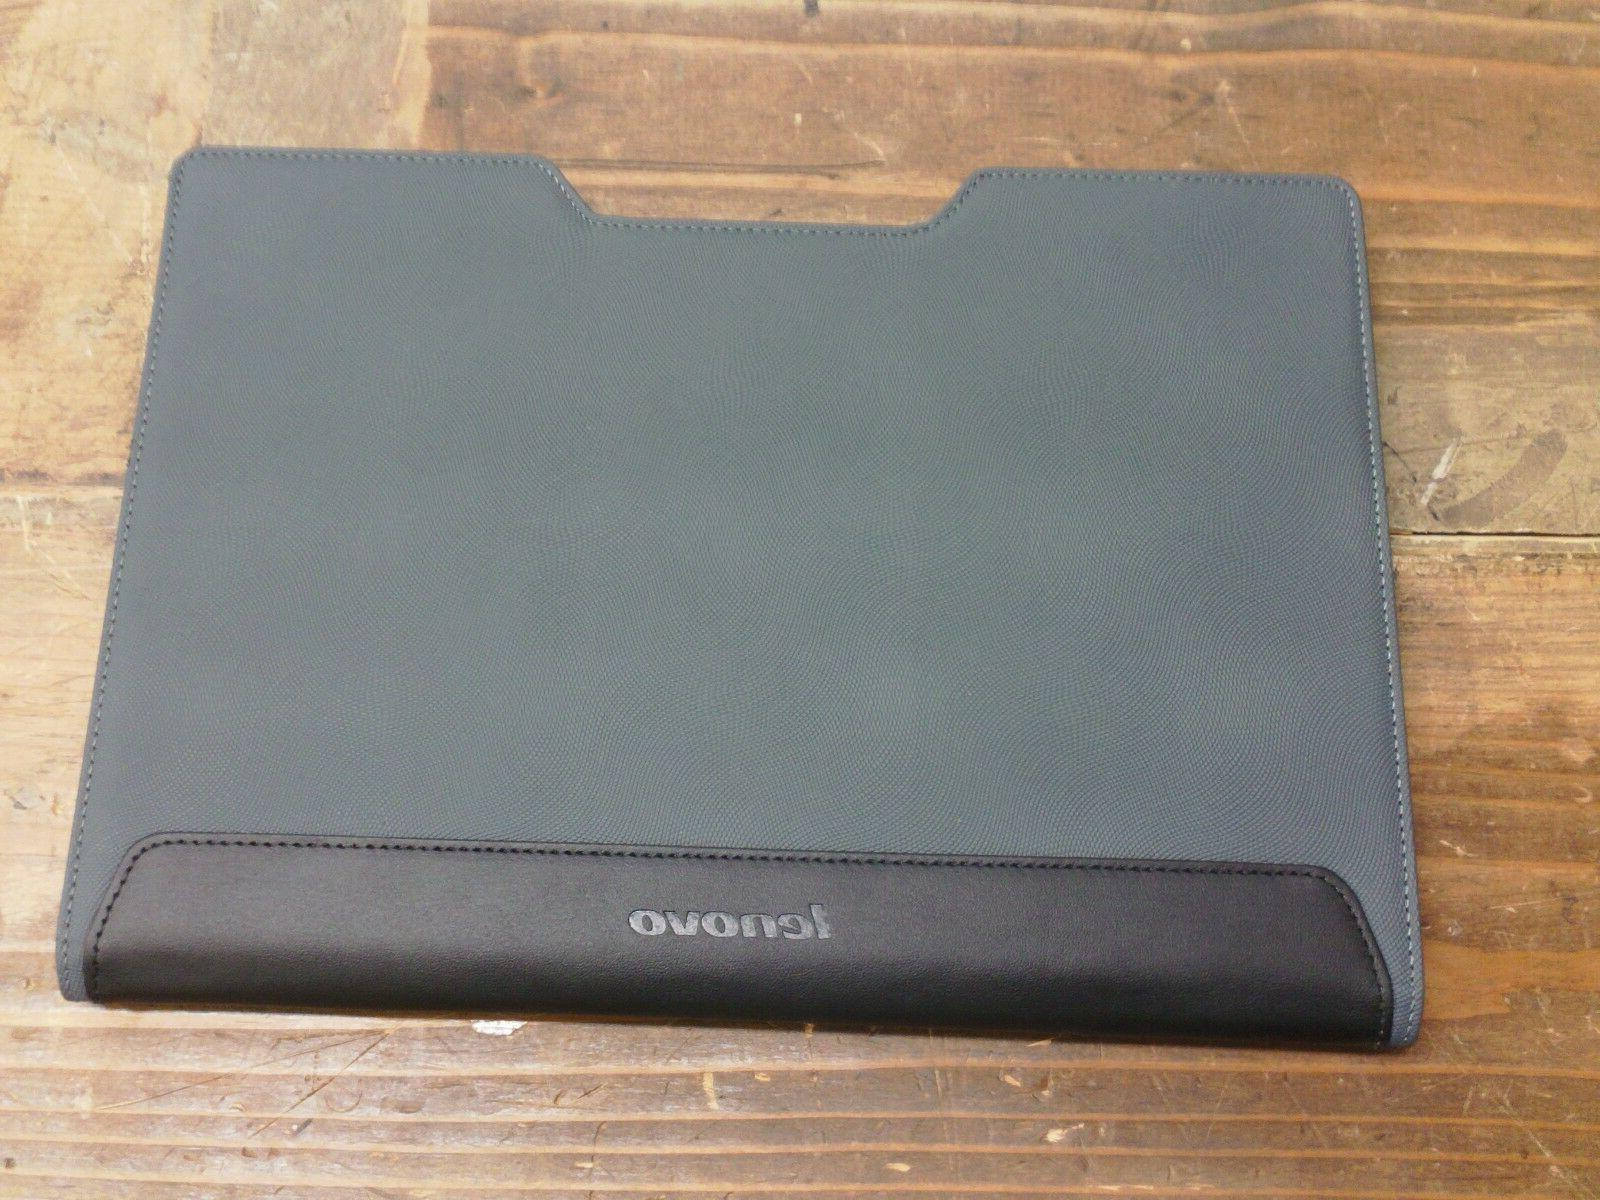 Lenovo GX40J46556 Flex 3 11 Slot In Sleeve Laptop Case USB P